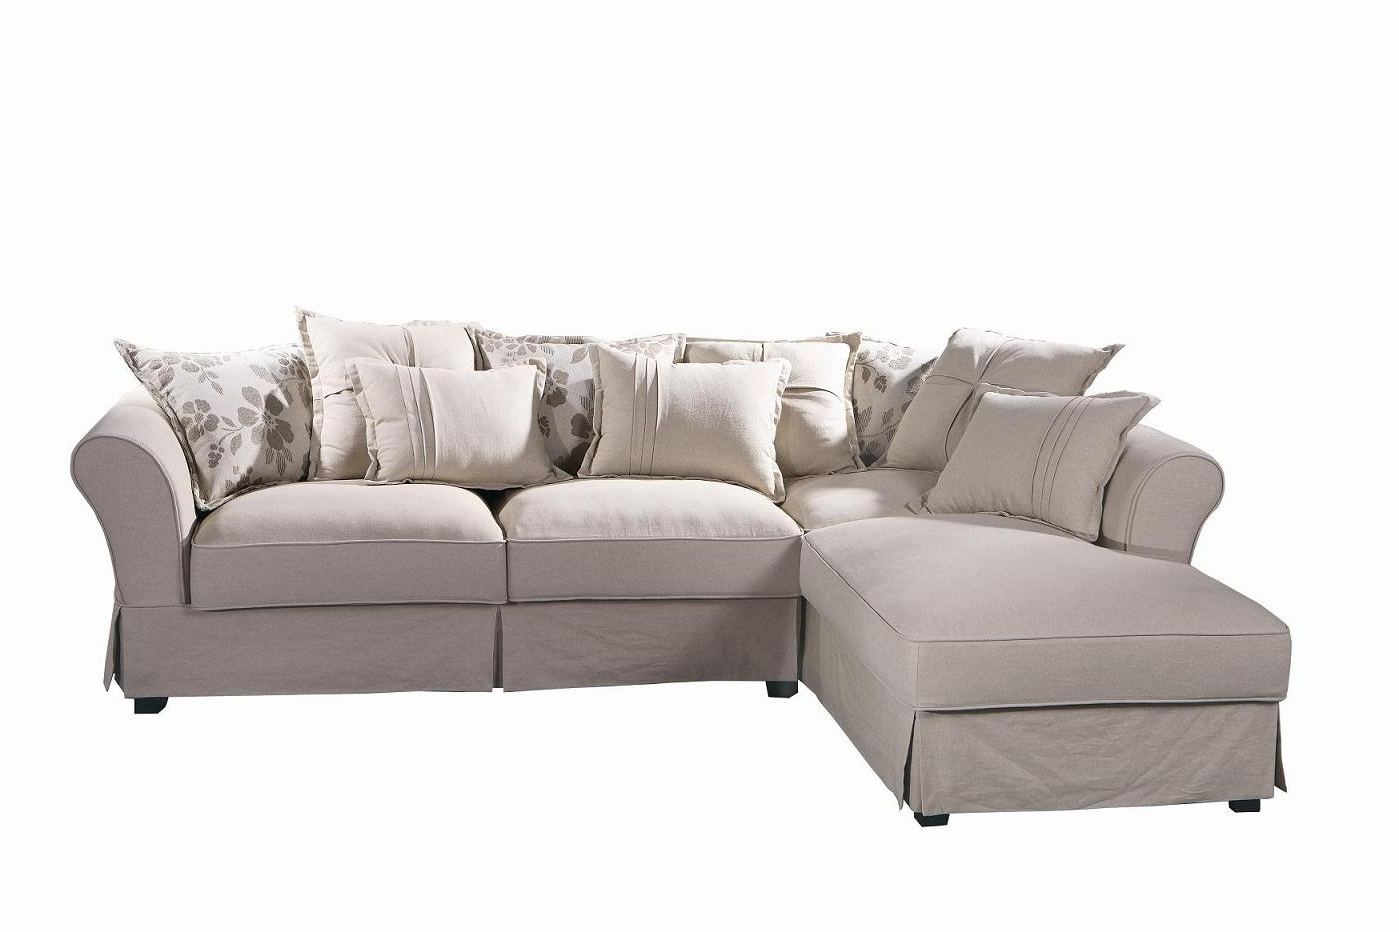 Nashville Sectional Sofas Intended For Famous Low Price Sectional Sofas – Hotelsbacau (View 11 of 15)